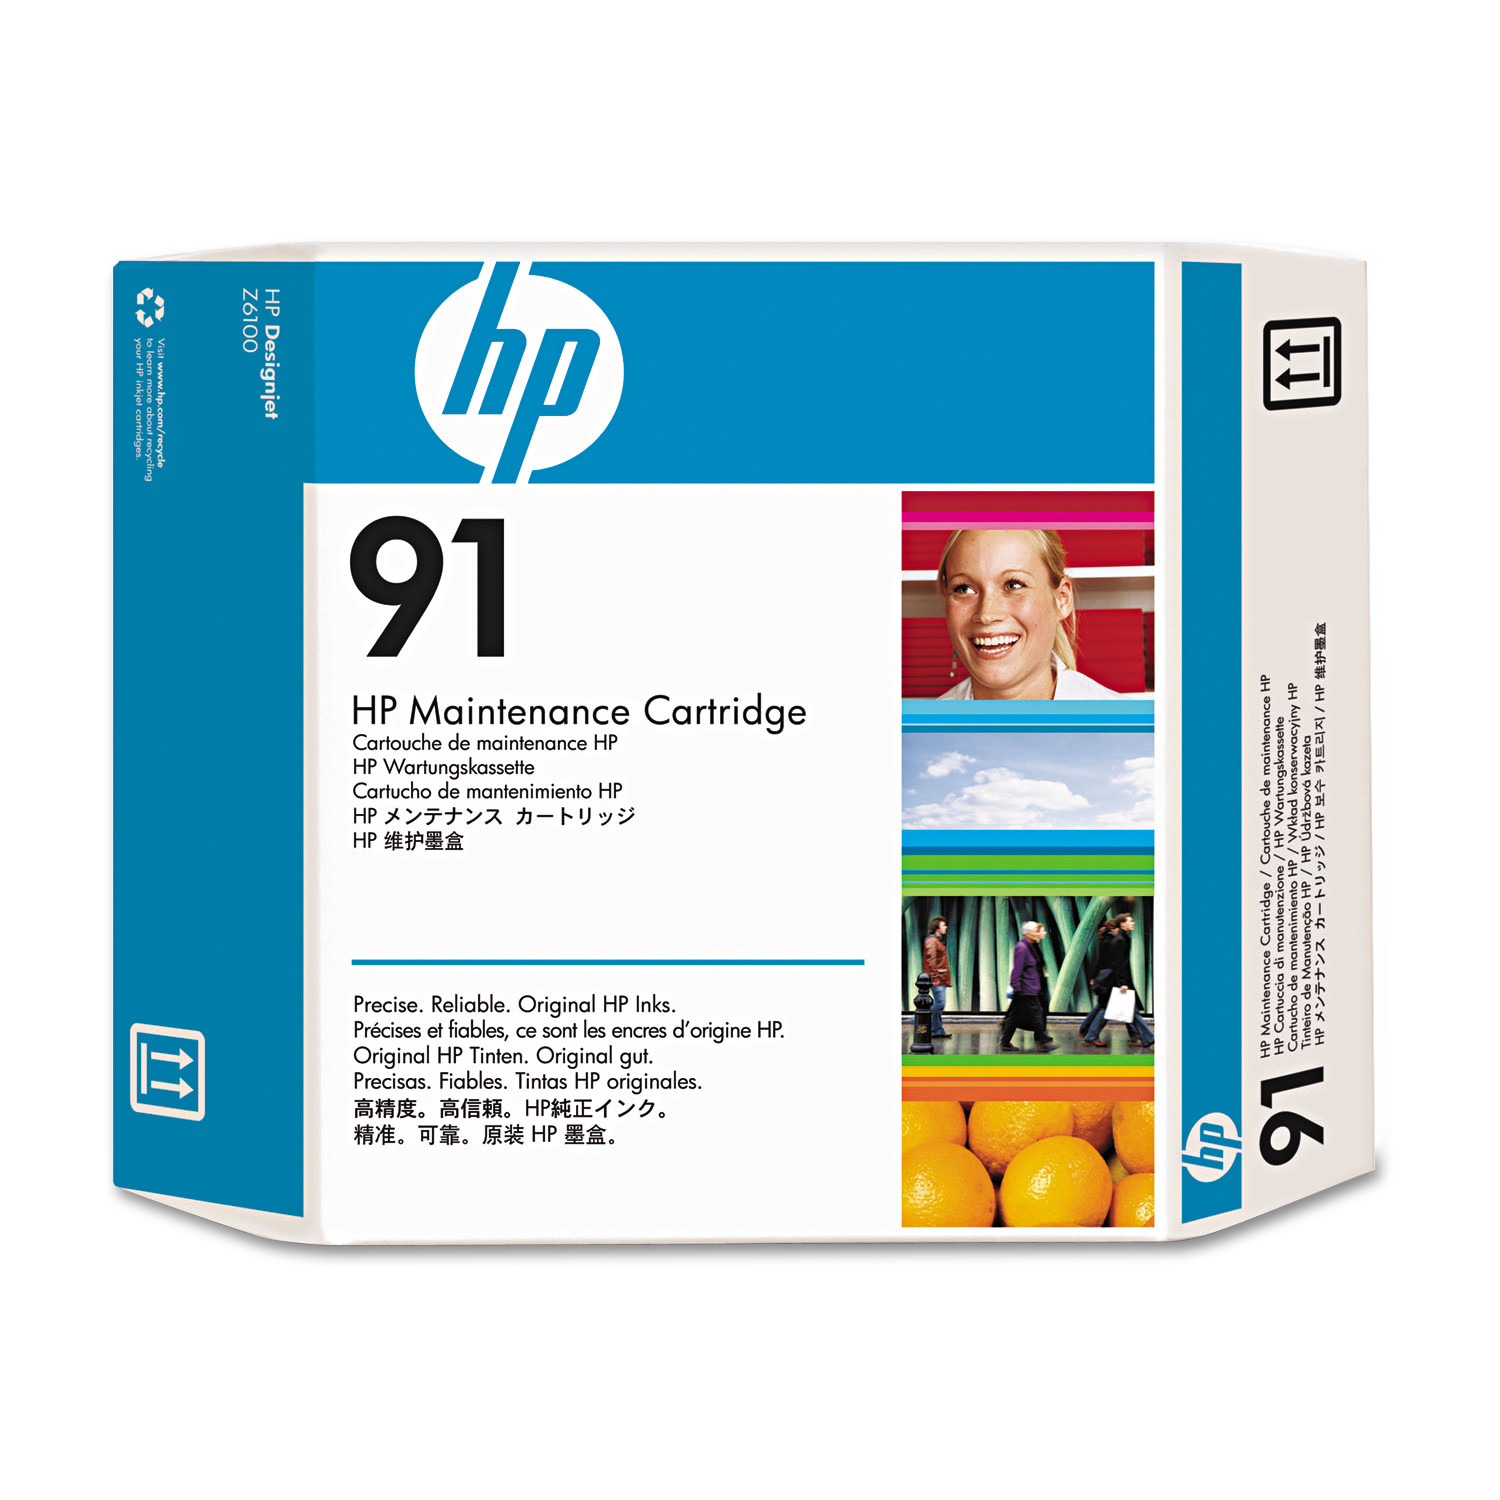 HP HP 91, (C9518A) Designjet Maintenance Cartridge